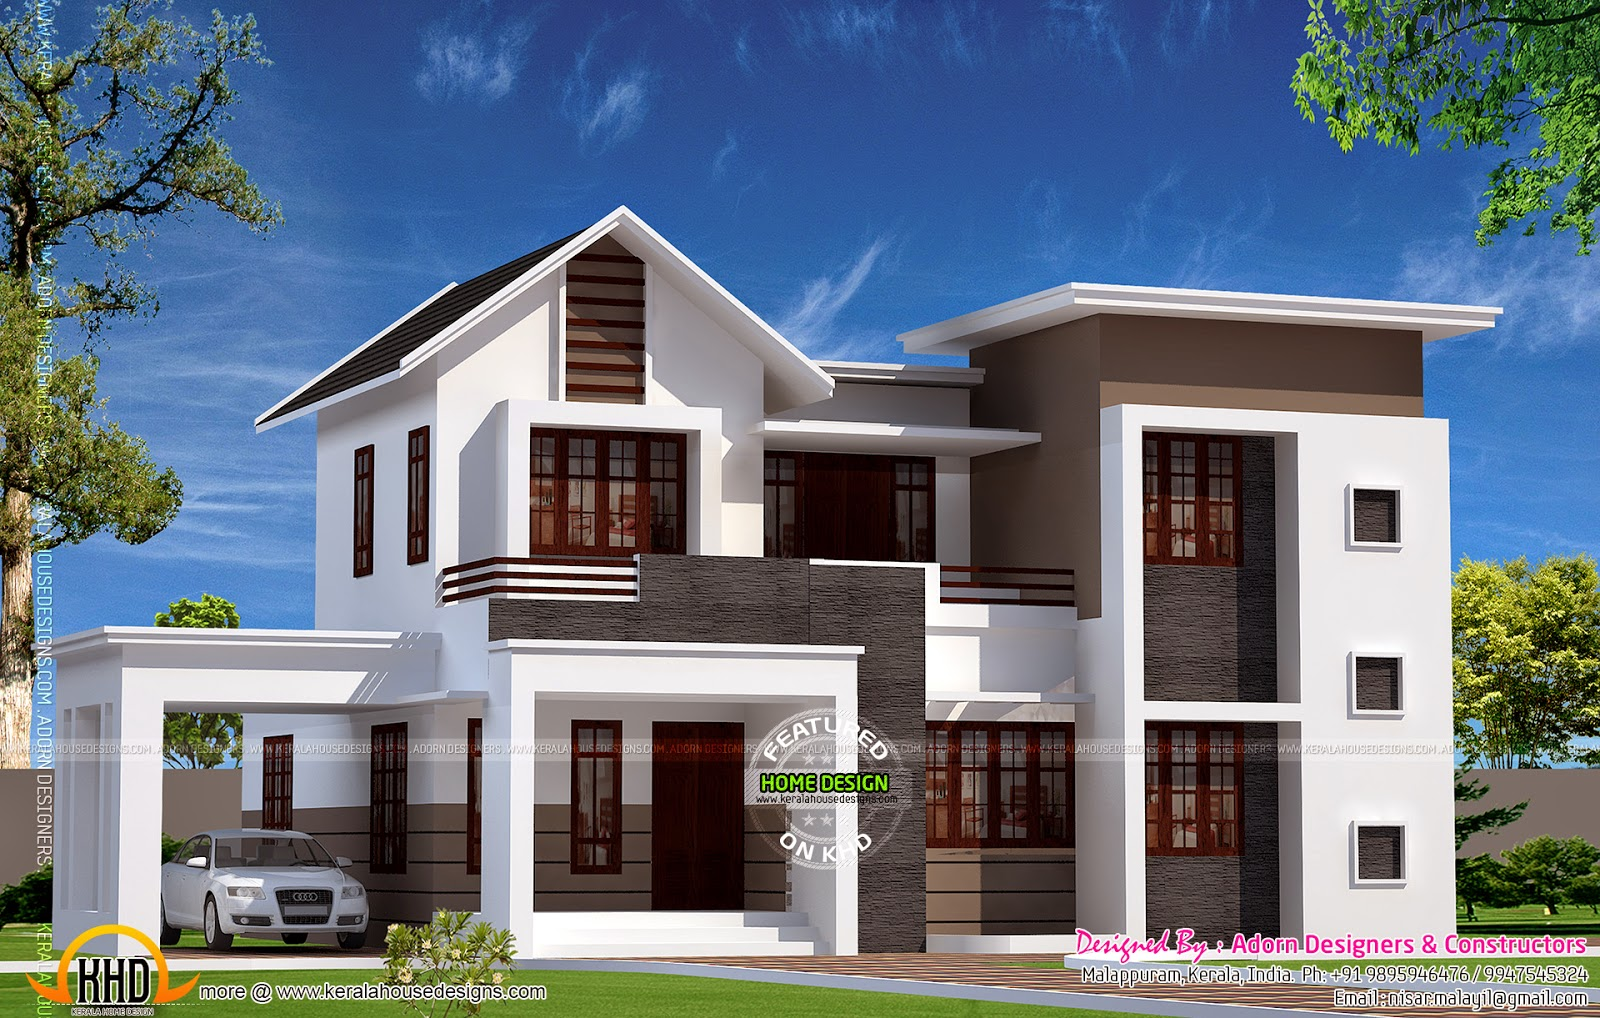 New house design in 1900 sq feet kerala home design and for Home design images gallery